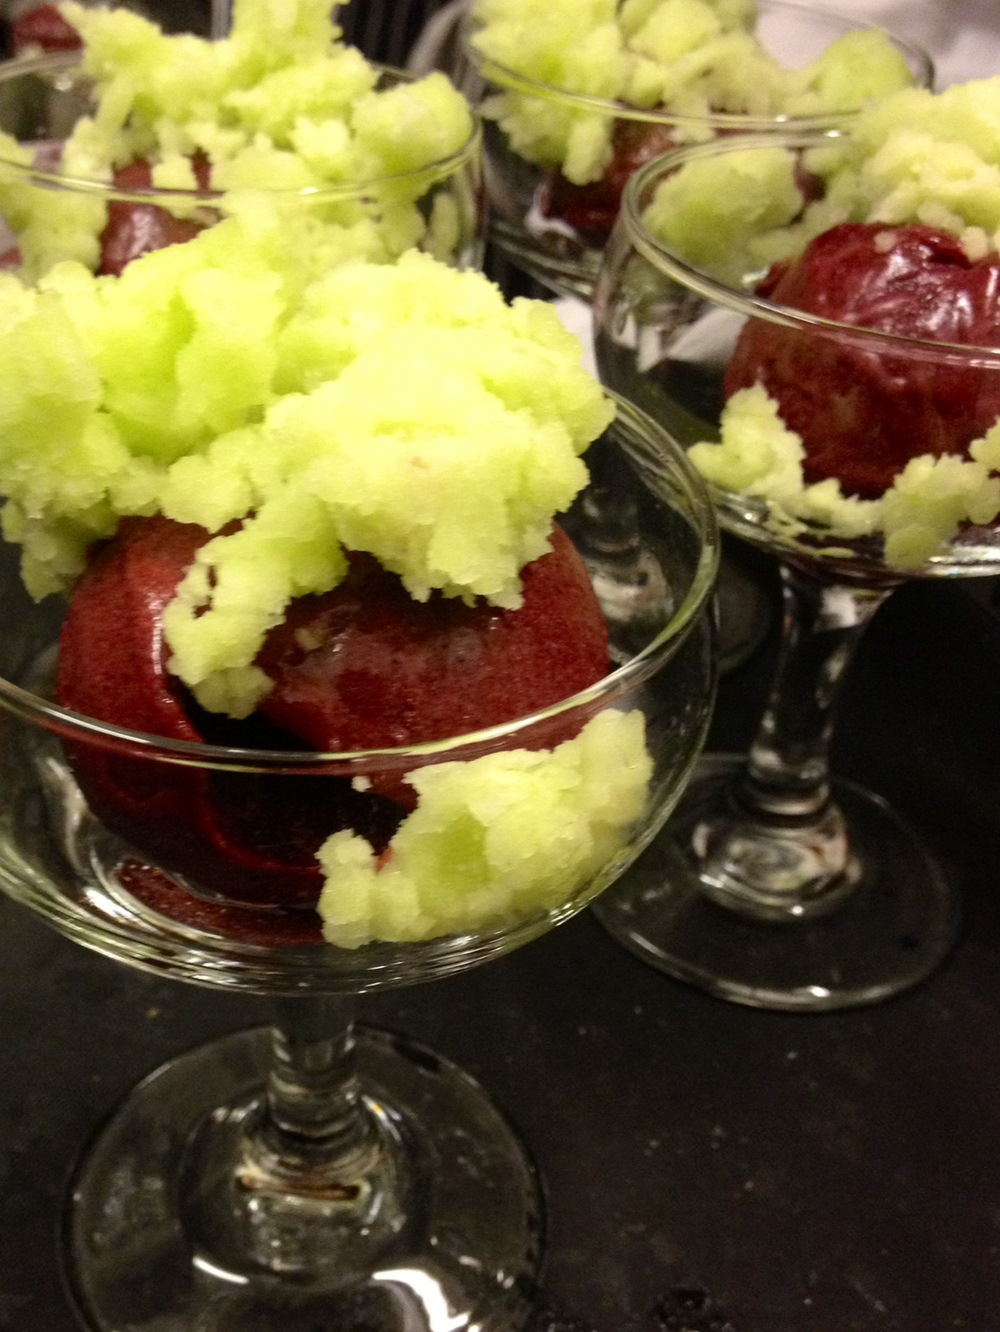 Apple-and-blackcurrent-sorbet.jpg